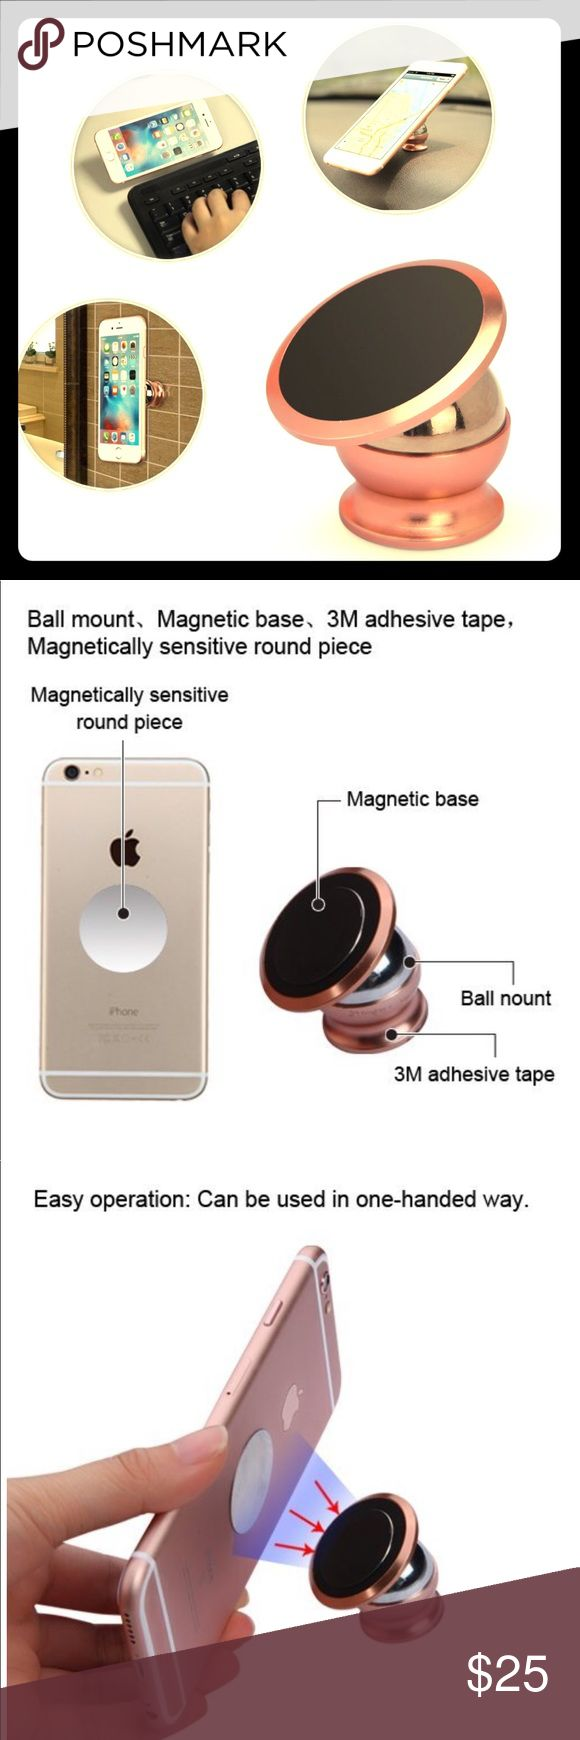 MyBat | Universal Magnetic Holder-WP | Rose Gold 1 x MYBAT Universal Magnetic Holder-WP, Rose Gold . Wide compatibility: Can used for most smartphone, GPS, Car DVR, MP4,PSP, etc. 360°rotation: 360°versatile ball joint allows multiple viewing angles. Easy operation: Can be used in one-handed way. Features Wide compatibility: Can used for most smartphone, GPS, Car DVR, MP4,PSP, etc. 360°rotation: 360°versatile ball joint allows multiple viewing angles. Easy operation: Can be used in one-handed…